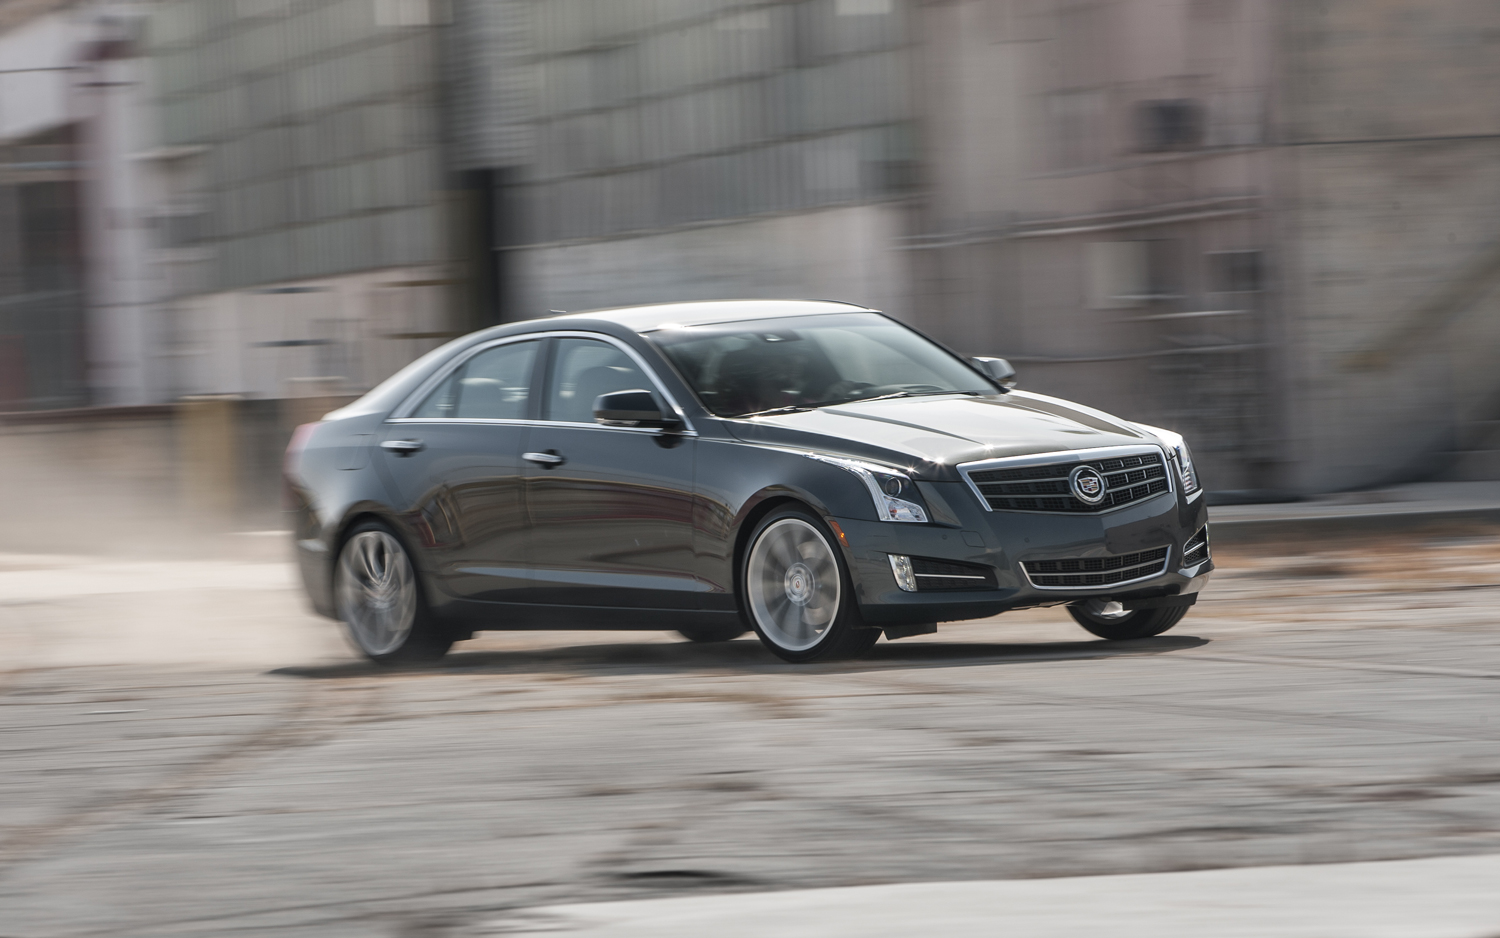 exclusive 2013 cadillac ats six speed manual transmission being rh motortrend com 2013 cadillac ats manual transmission for sale Cadillac CTS